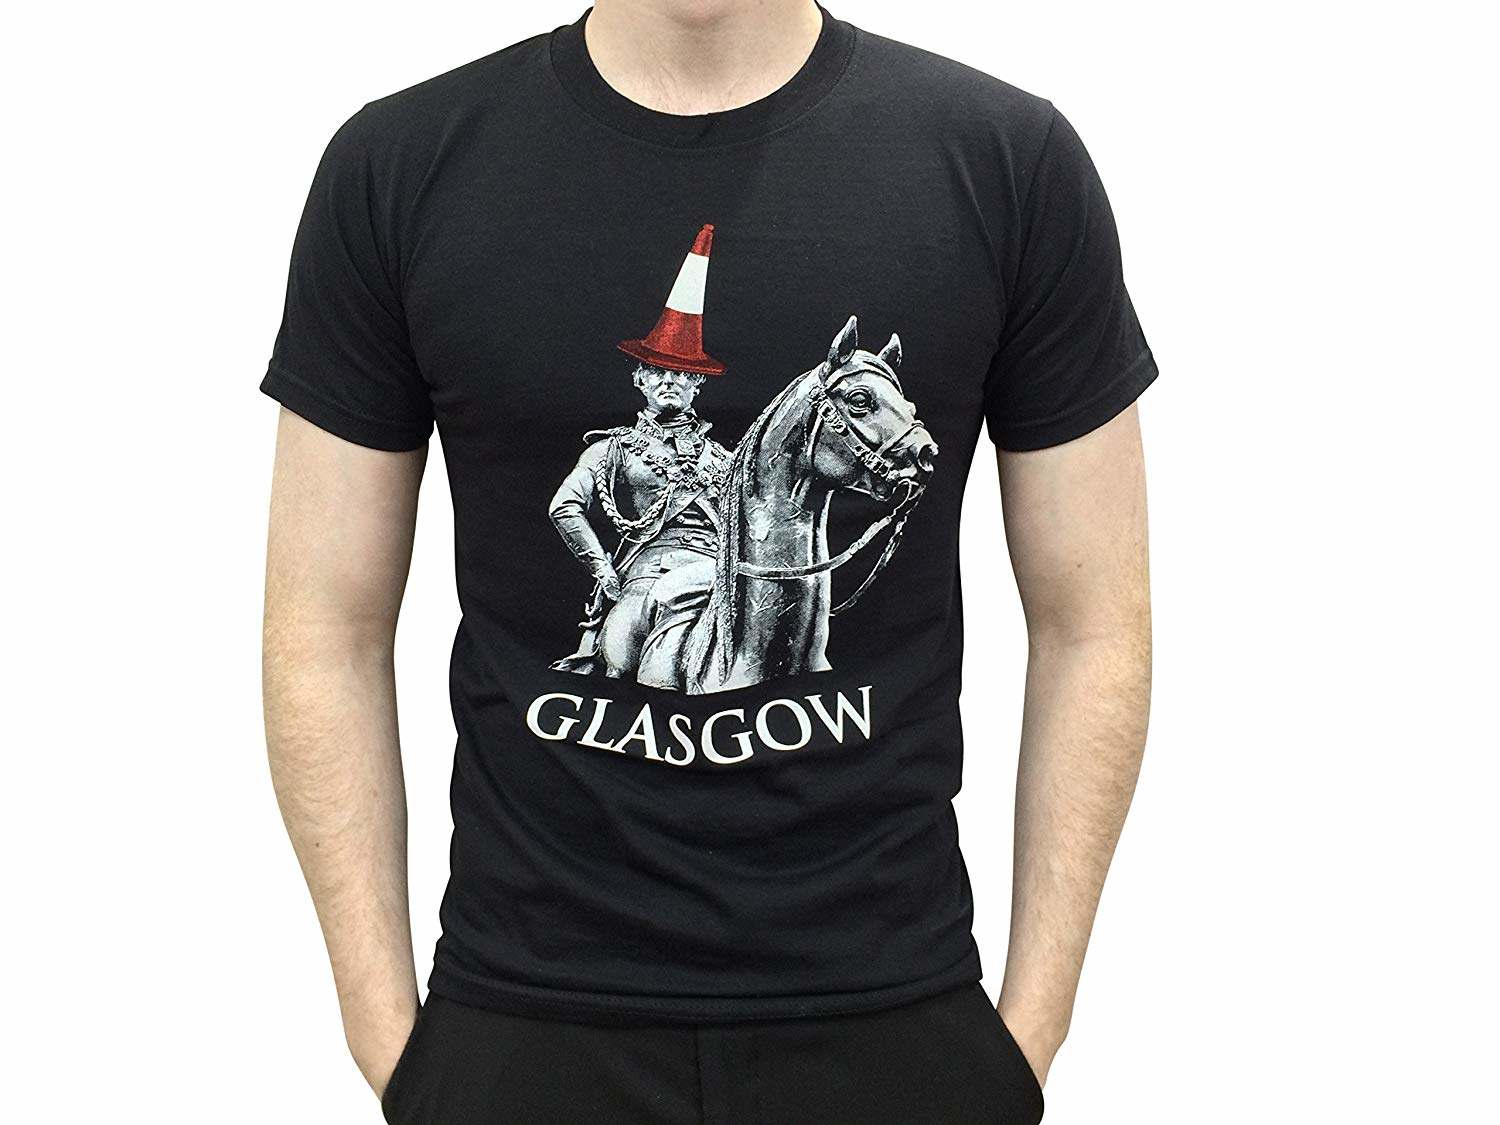 custom t-shirts uk, duke wellington, black t-shirt